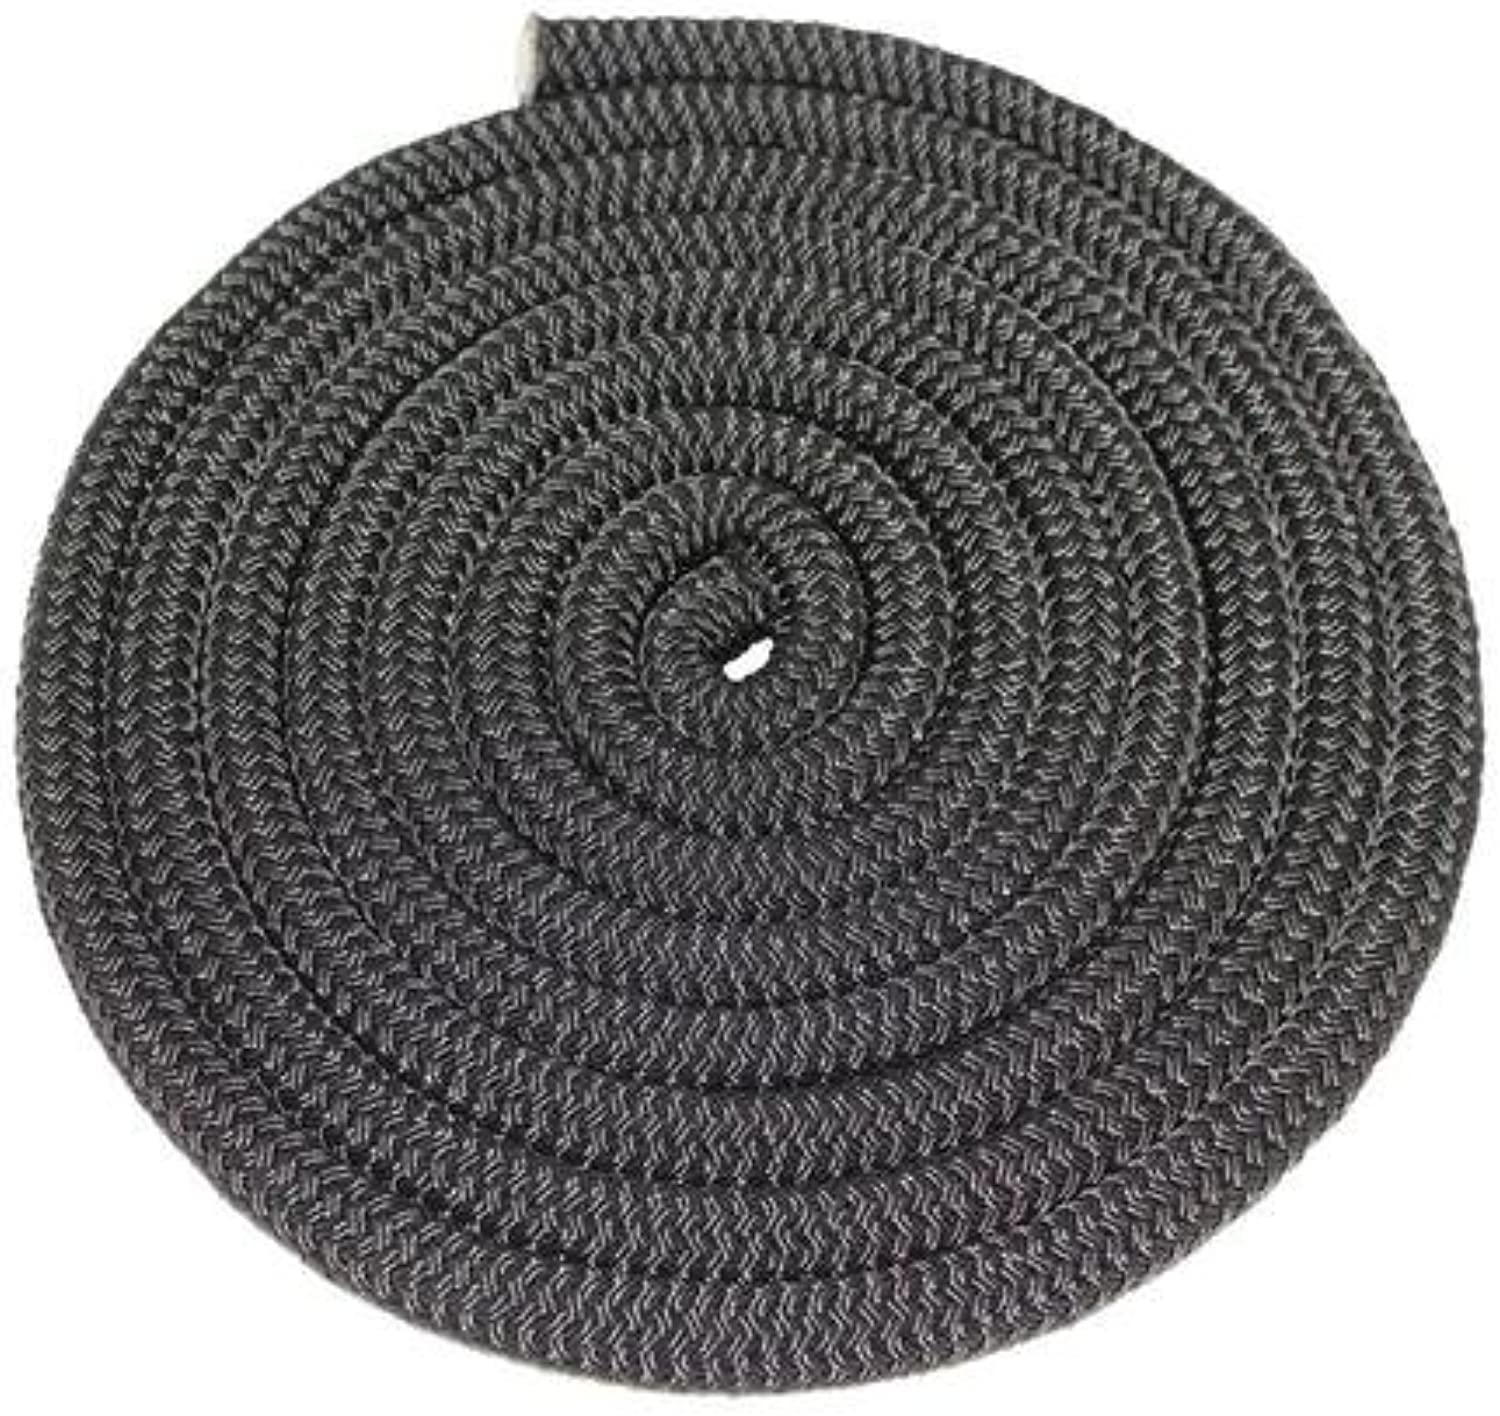 SGT Knots Double Braid Nylon Rope (1 2 inch) Twin Braid  AllPurpose Nylon Cord  for Mooring Towing Anchor Lines Gardening DIY Projects Crafting Construction More (50 Feet  Black)